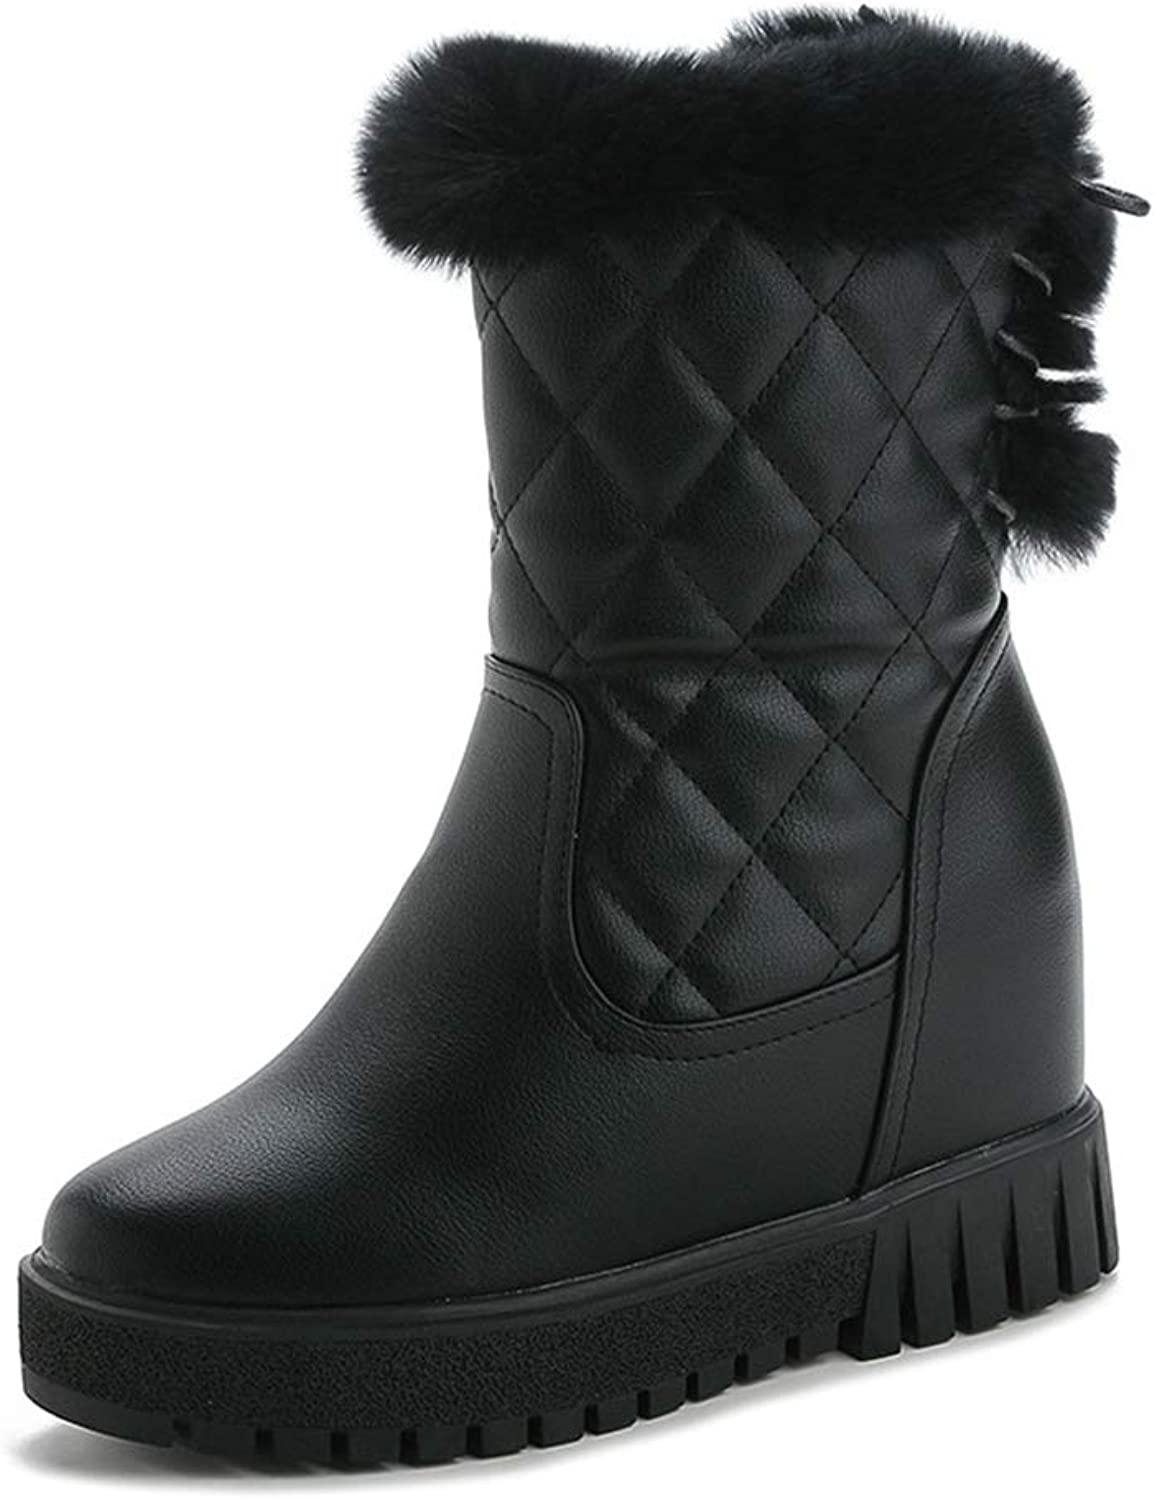 CYBLING Women's Quilted Ankle Mid Calf Boots Fluffy Fur Hidden Wedge Winter Snow Boots